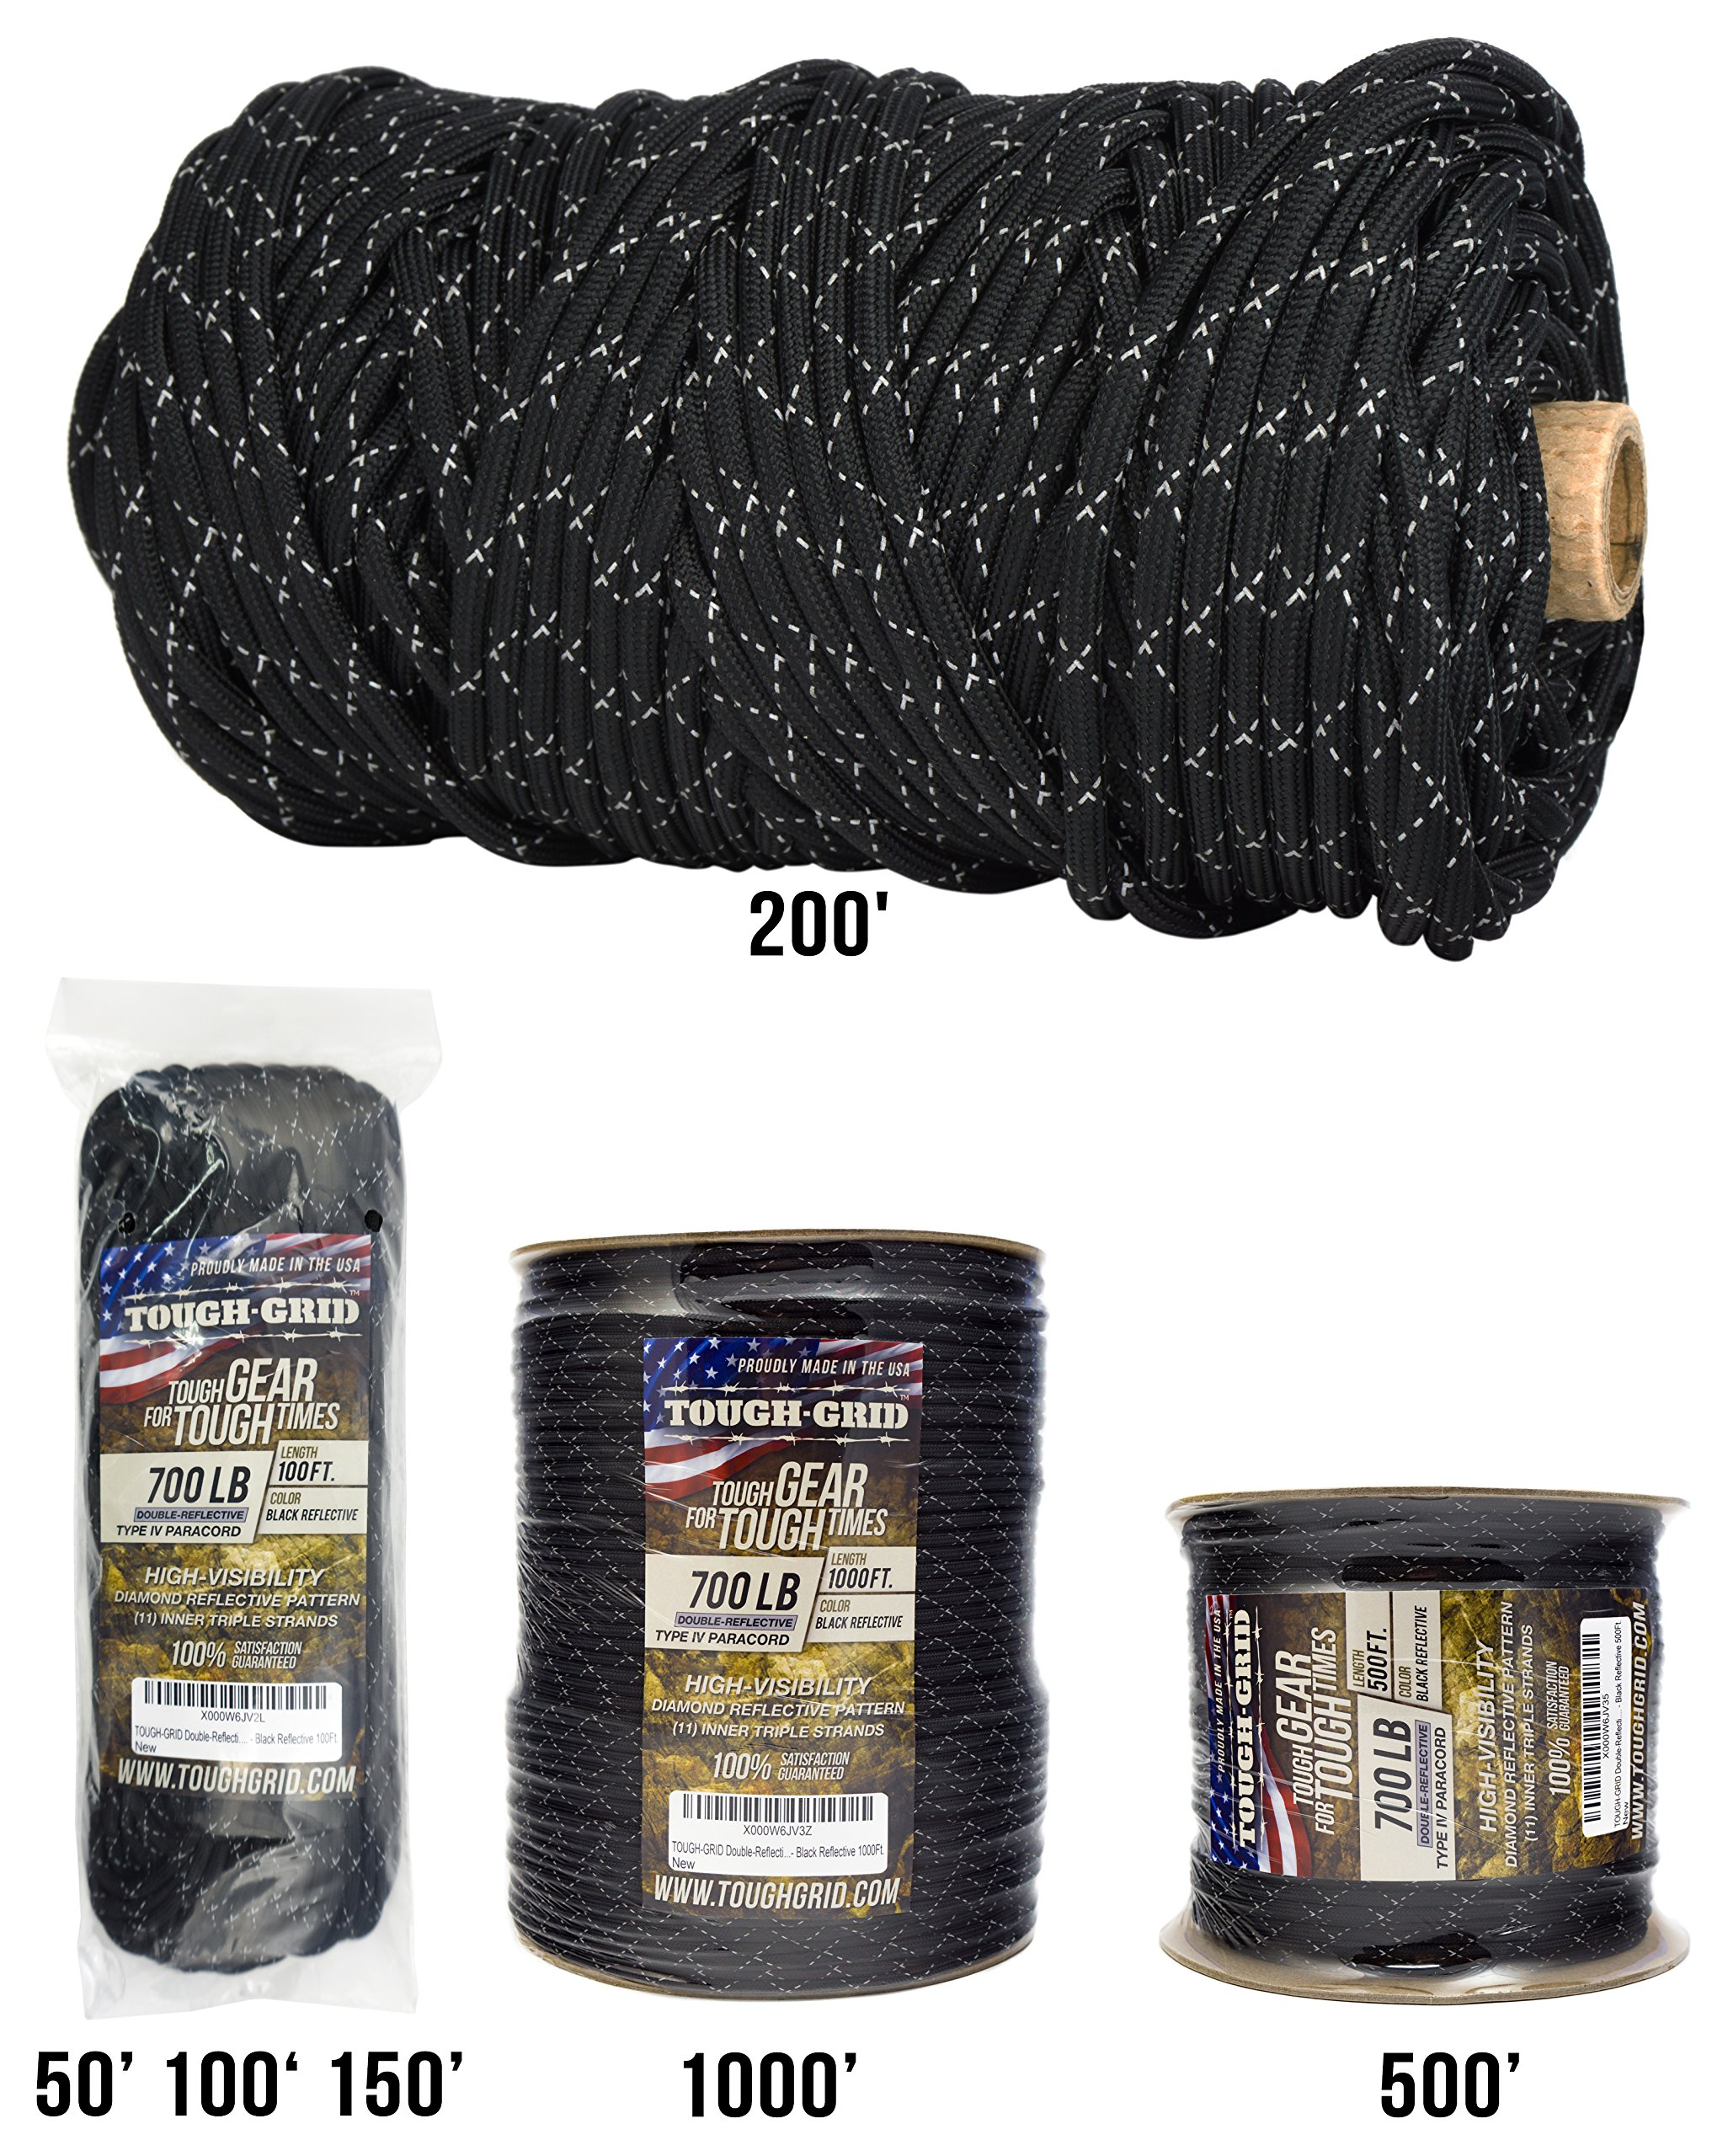 TOUGH-GRID New 700lb Double-Reflective Paracord/Parachute Cord - 2 Vibrant Retro-Reflective Strands for The Ultimate High-Visibility Cord - 100% Nylon - Made in USA. - 1000Ft. Black Reflective